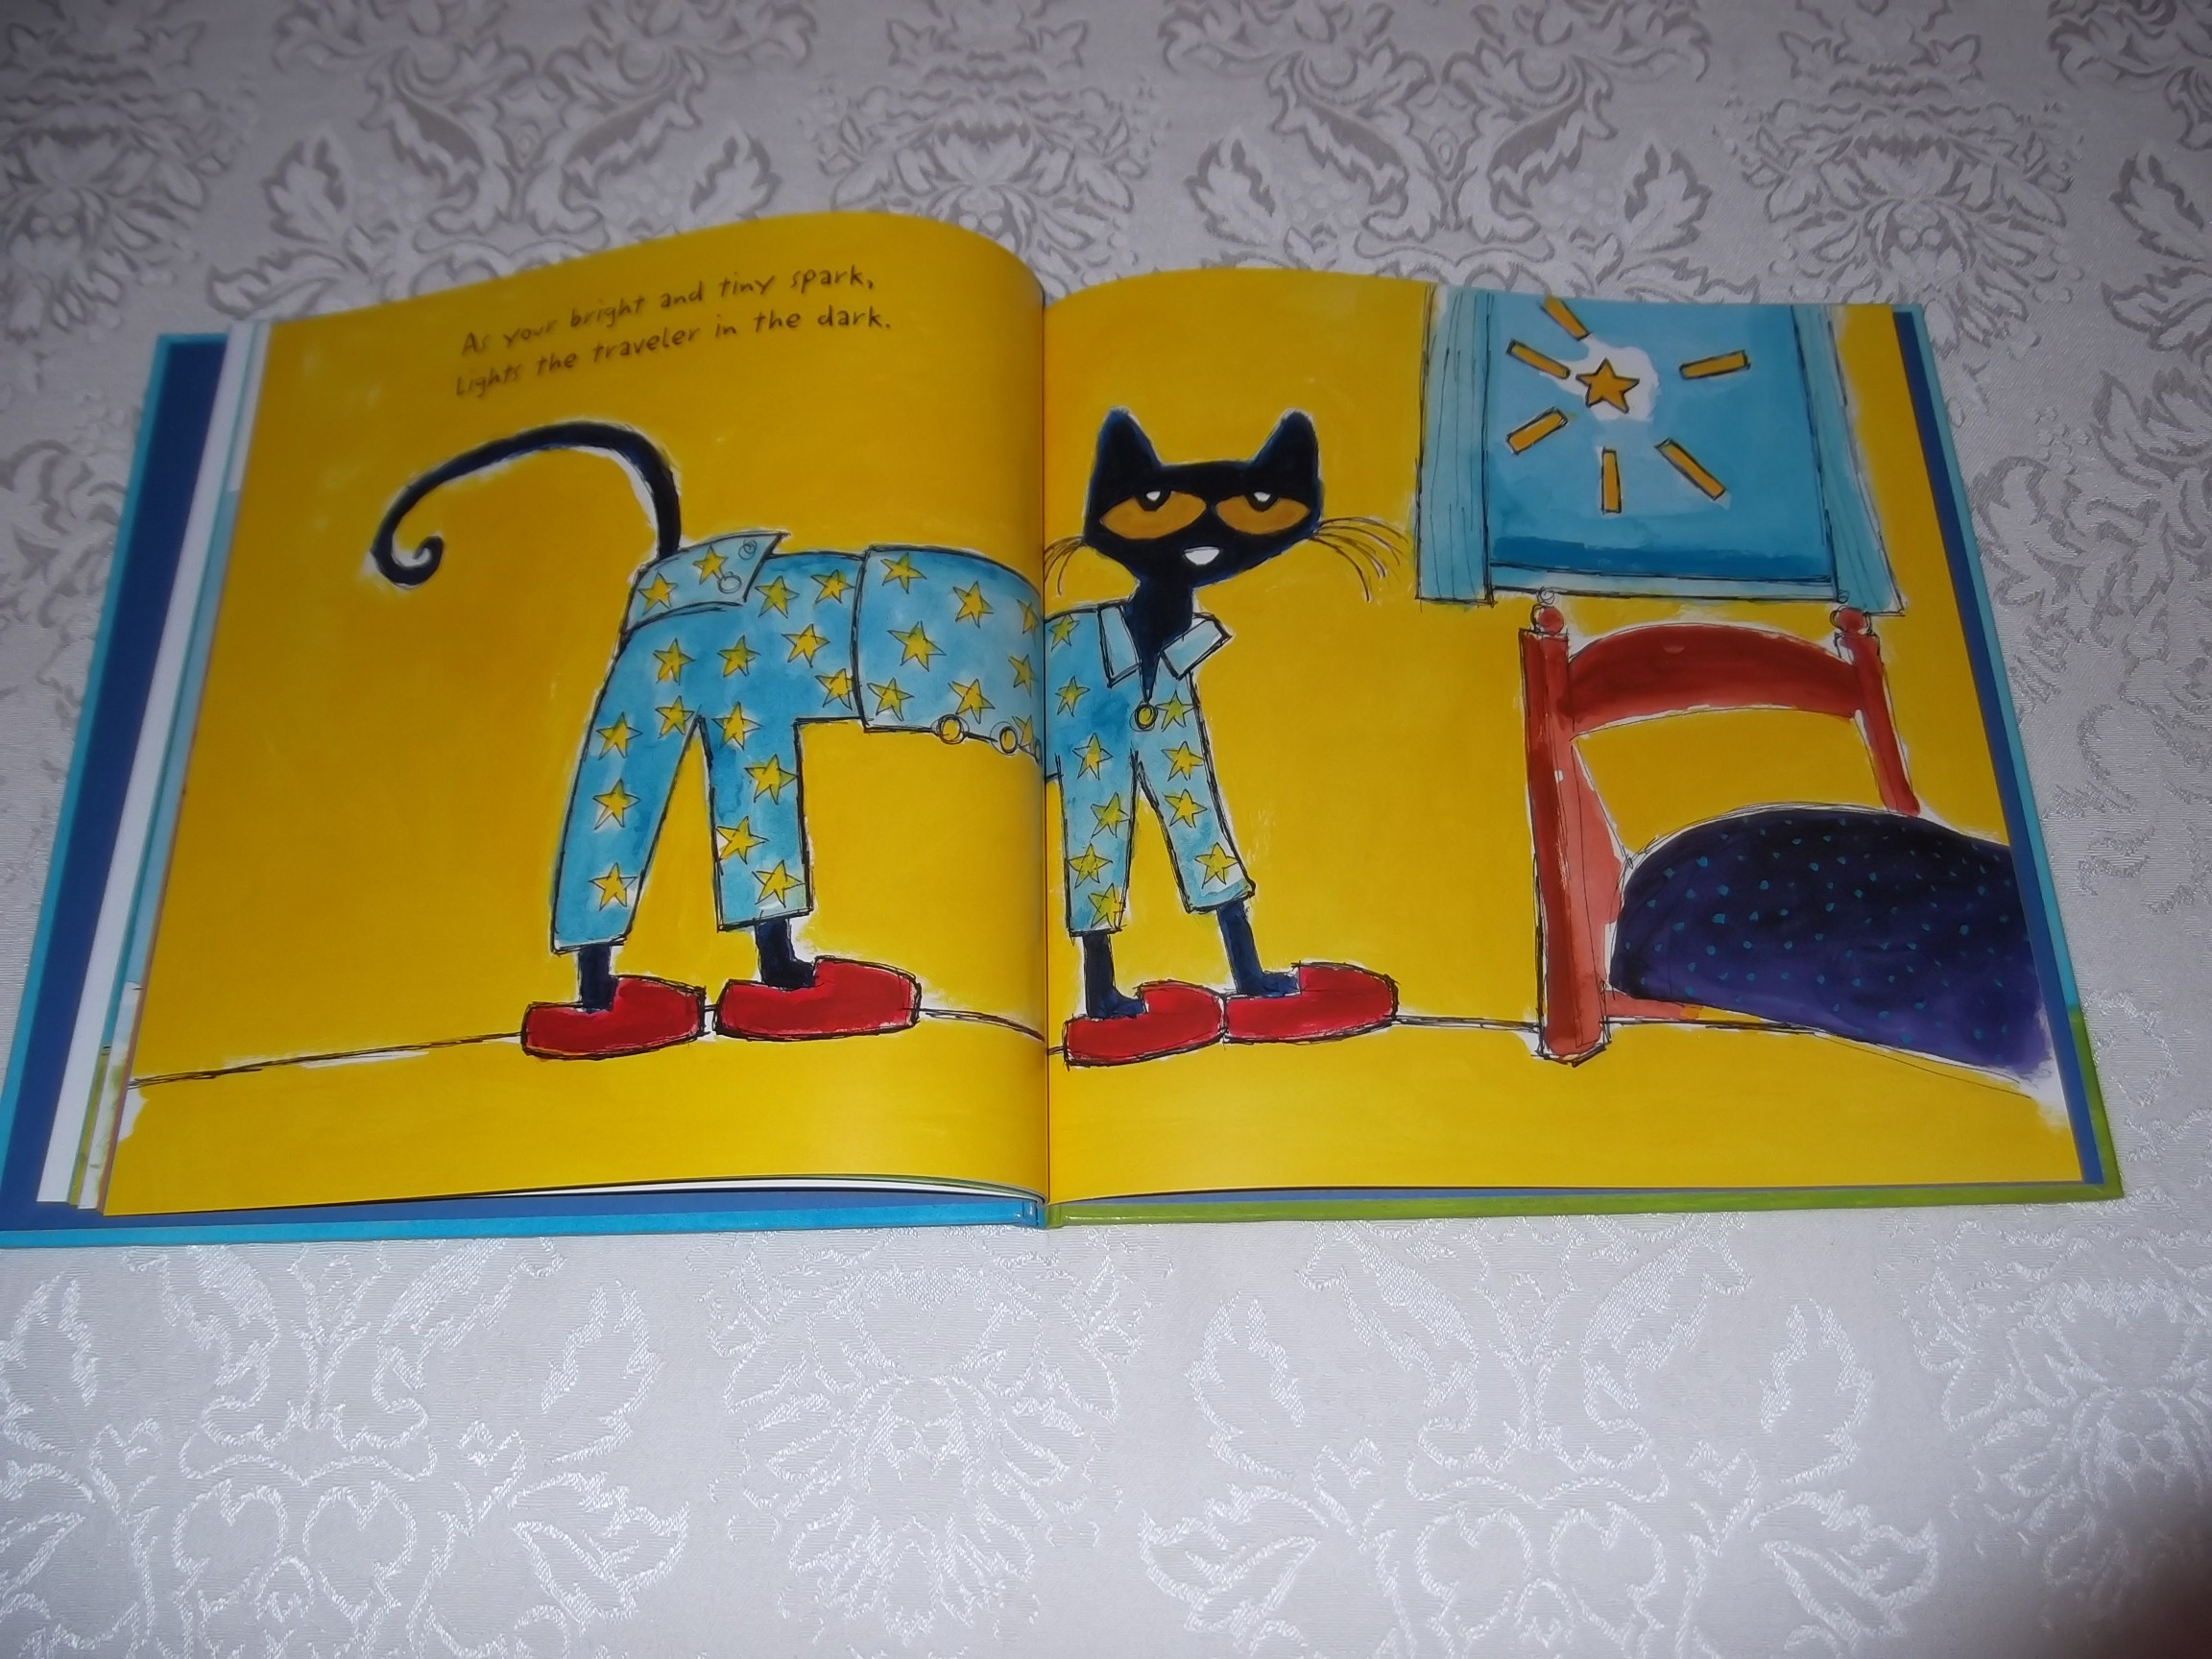 Image 6 of Pete the Cat Twinkle, Twinkle, Little Star James Dean Brand New HC